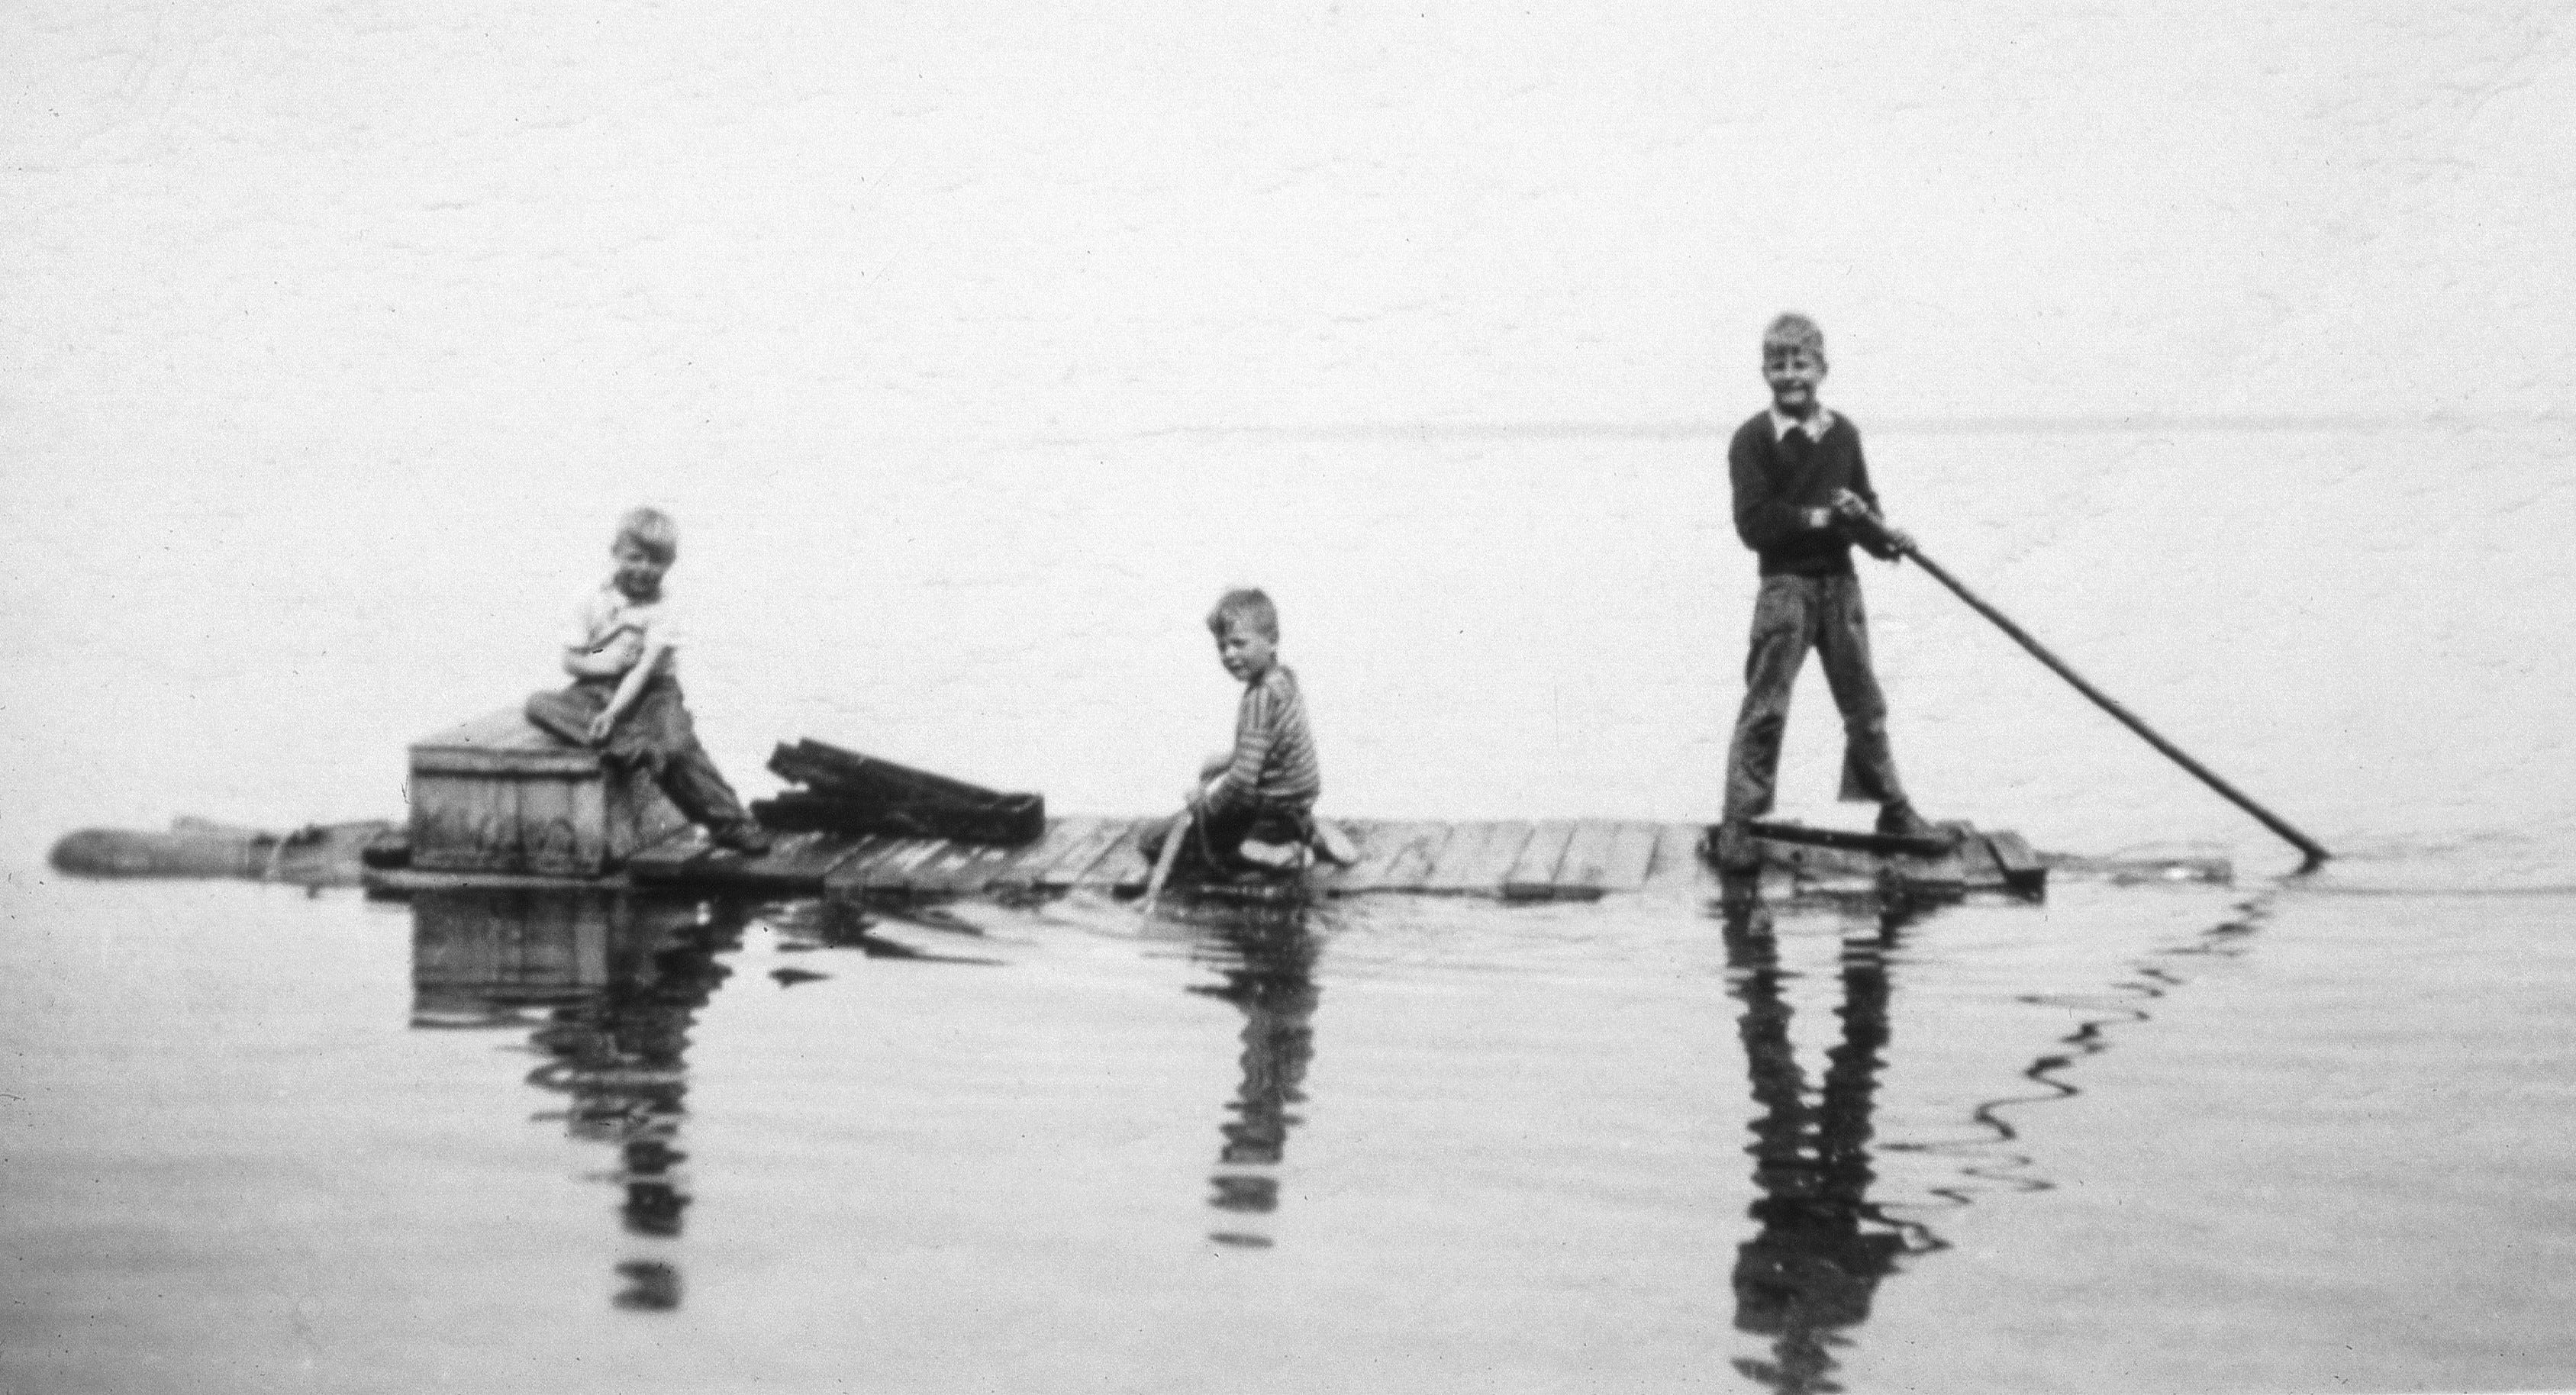 Bob Dahl, center at age 6, his brother Carl Dahl  Jr,. right at age 9, and cousin Paul Hansen, left, explore Lake Superior at Sand Island in 1948 on a raft fashioned from salvaged materials. The Dahls lived on a property on Sand Island before the Apostle Islands became a national lakeshore in 1970.